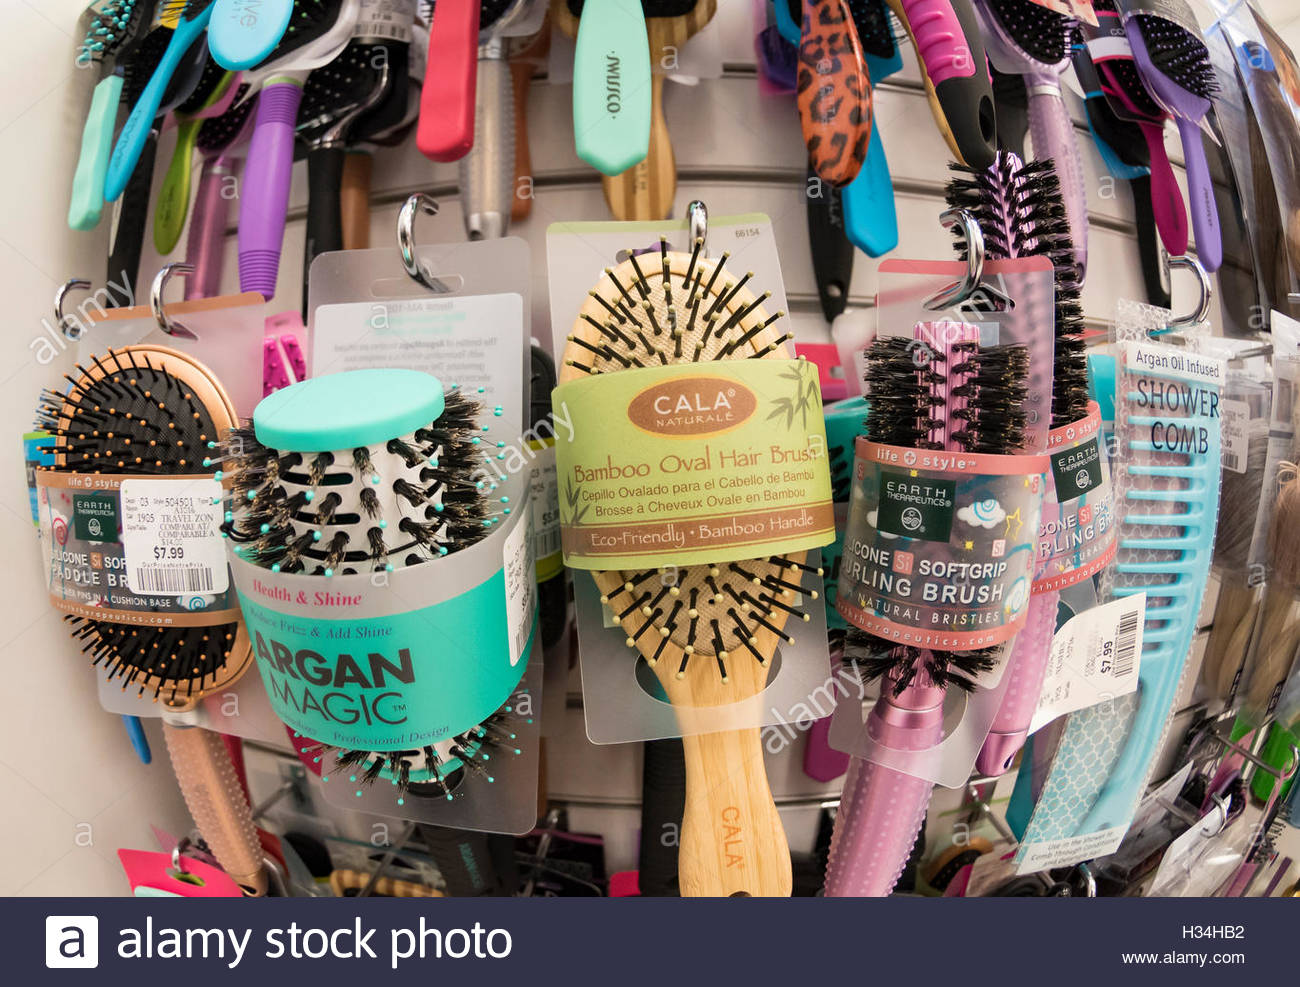 Hair Care Products On Display Stock Photos Ovale Olive Oil 100 Ml Diverse Brushes And Combs Arranged In A Store Image